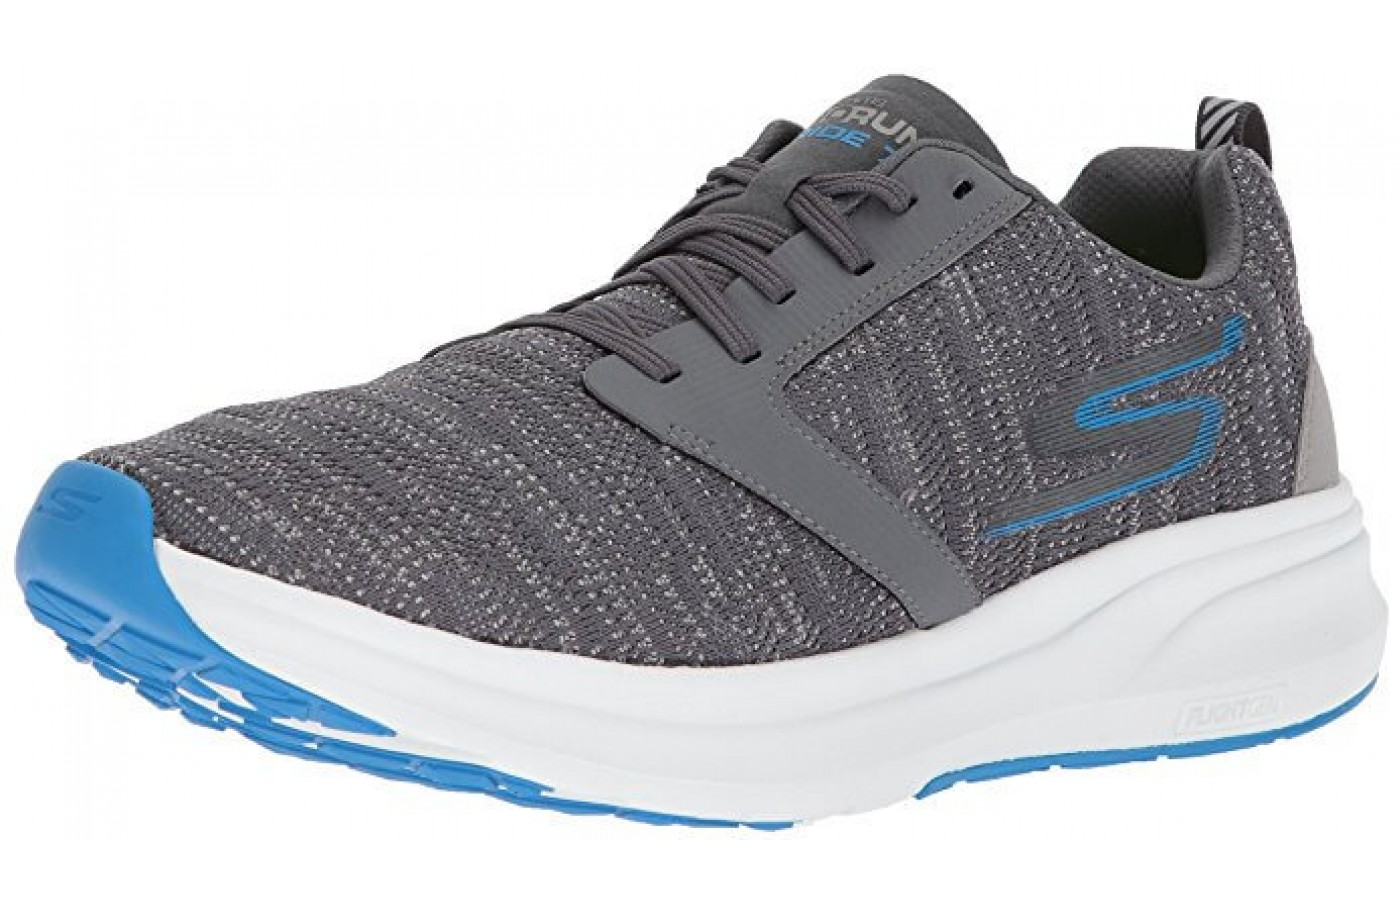 The Skechers GORun Ride 7 front angled perspective